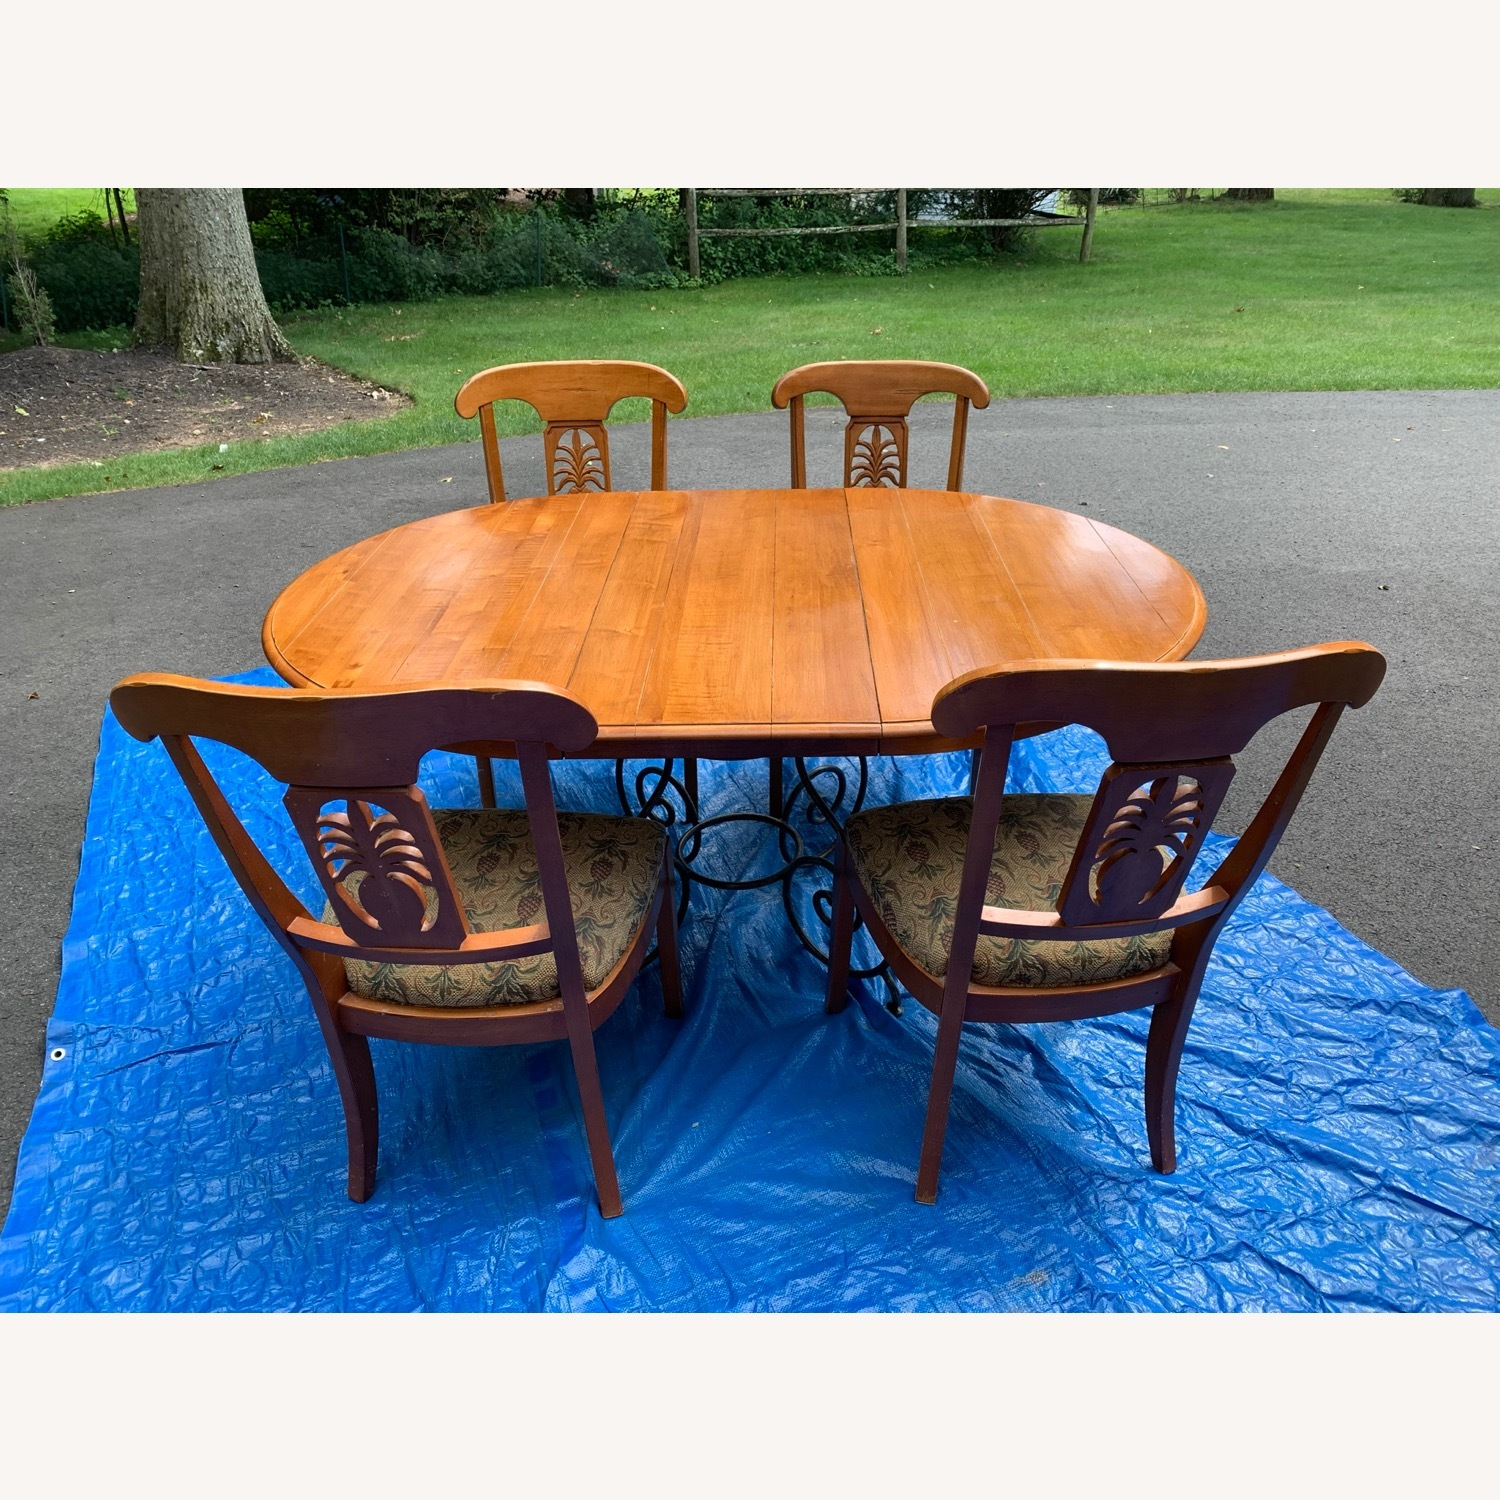 Ethan Allen Wood Dining Table with Leaf & 4 Chairs - image-0